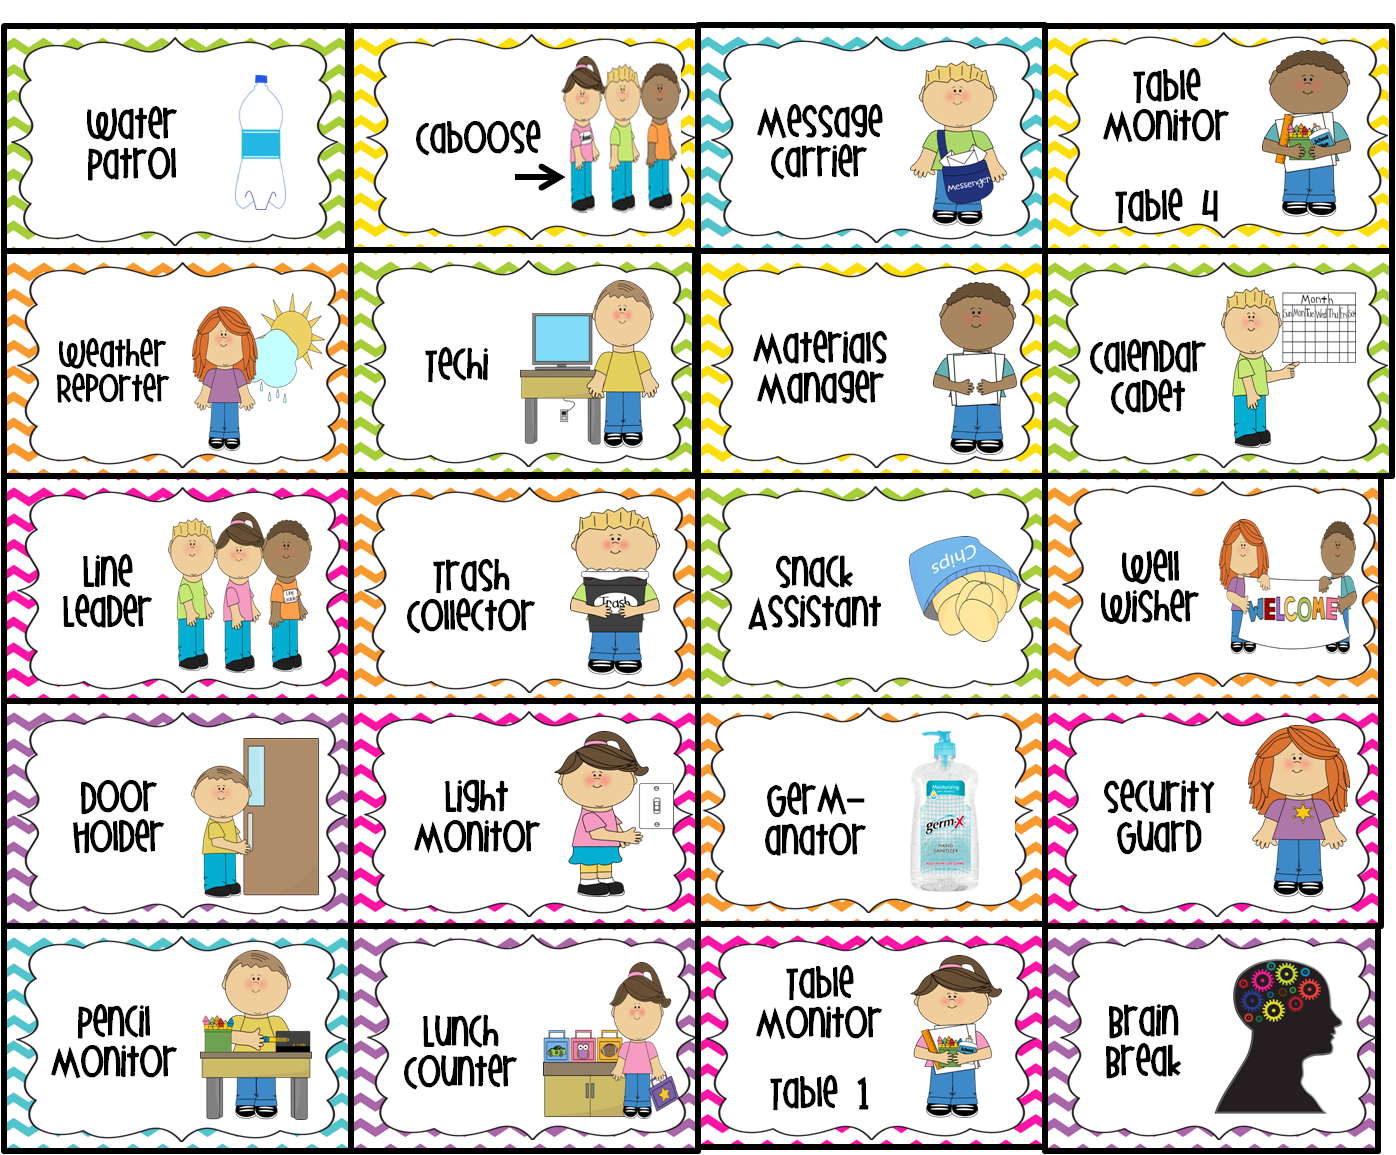 Classroom Jobs Printable  Water Patrol  Caboose Message